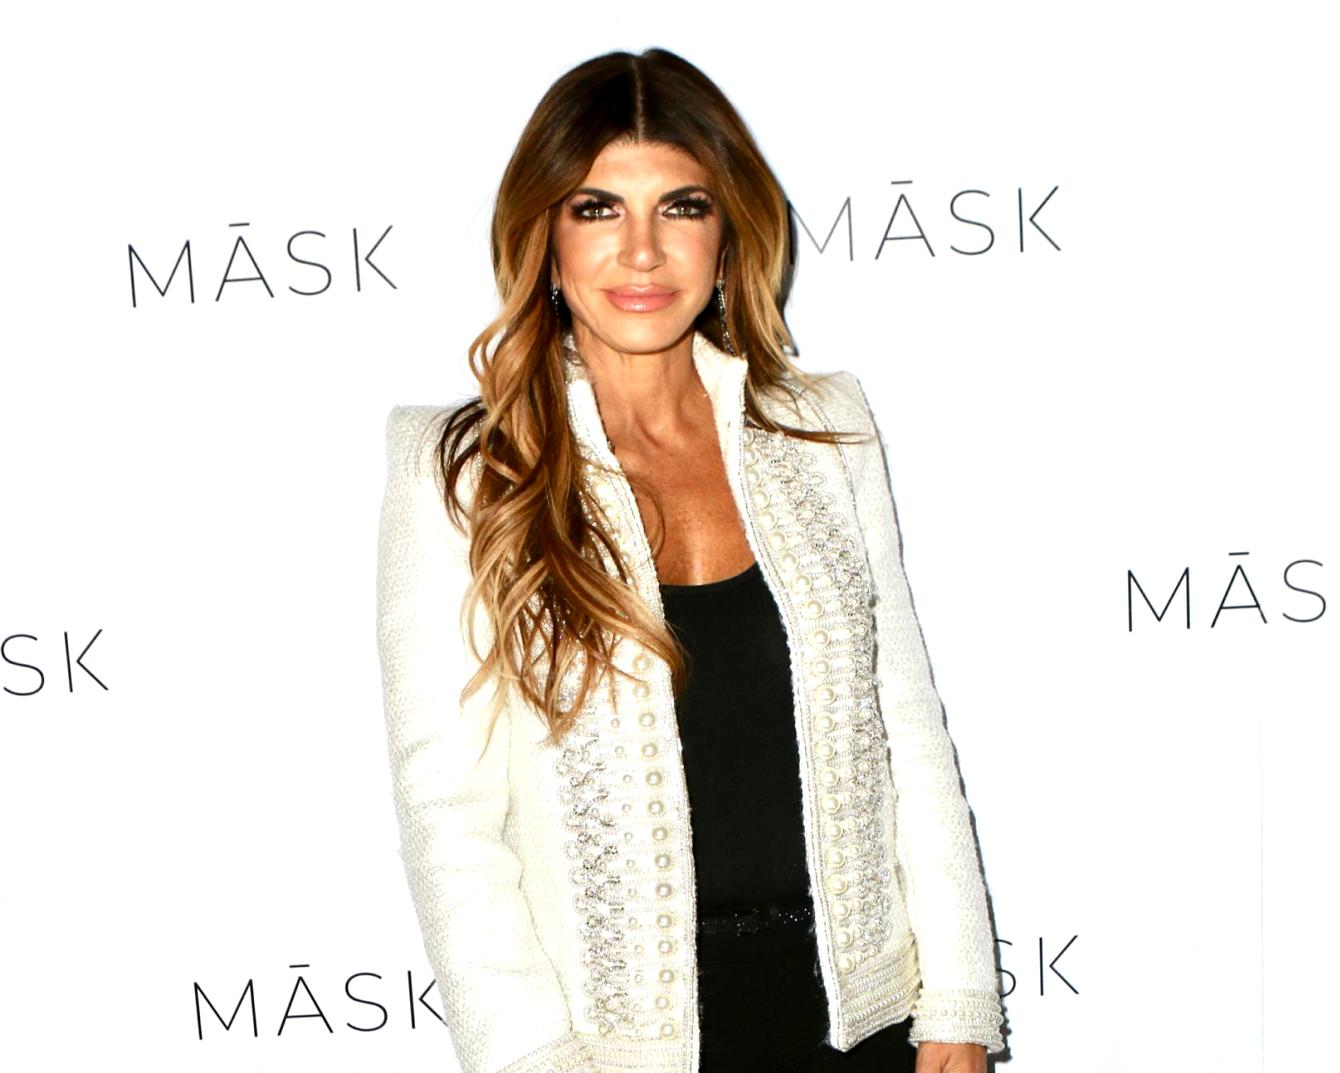 REPORT: Teresa Giudice Throws Red Wine On Co-Star While Filming RHONJ Season 10 At Melissa Gorga's Fashion Show